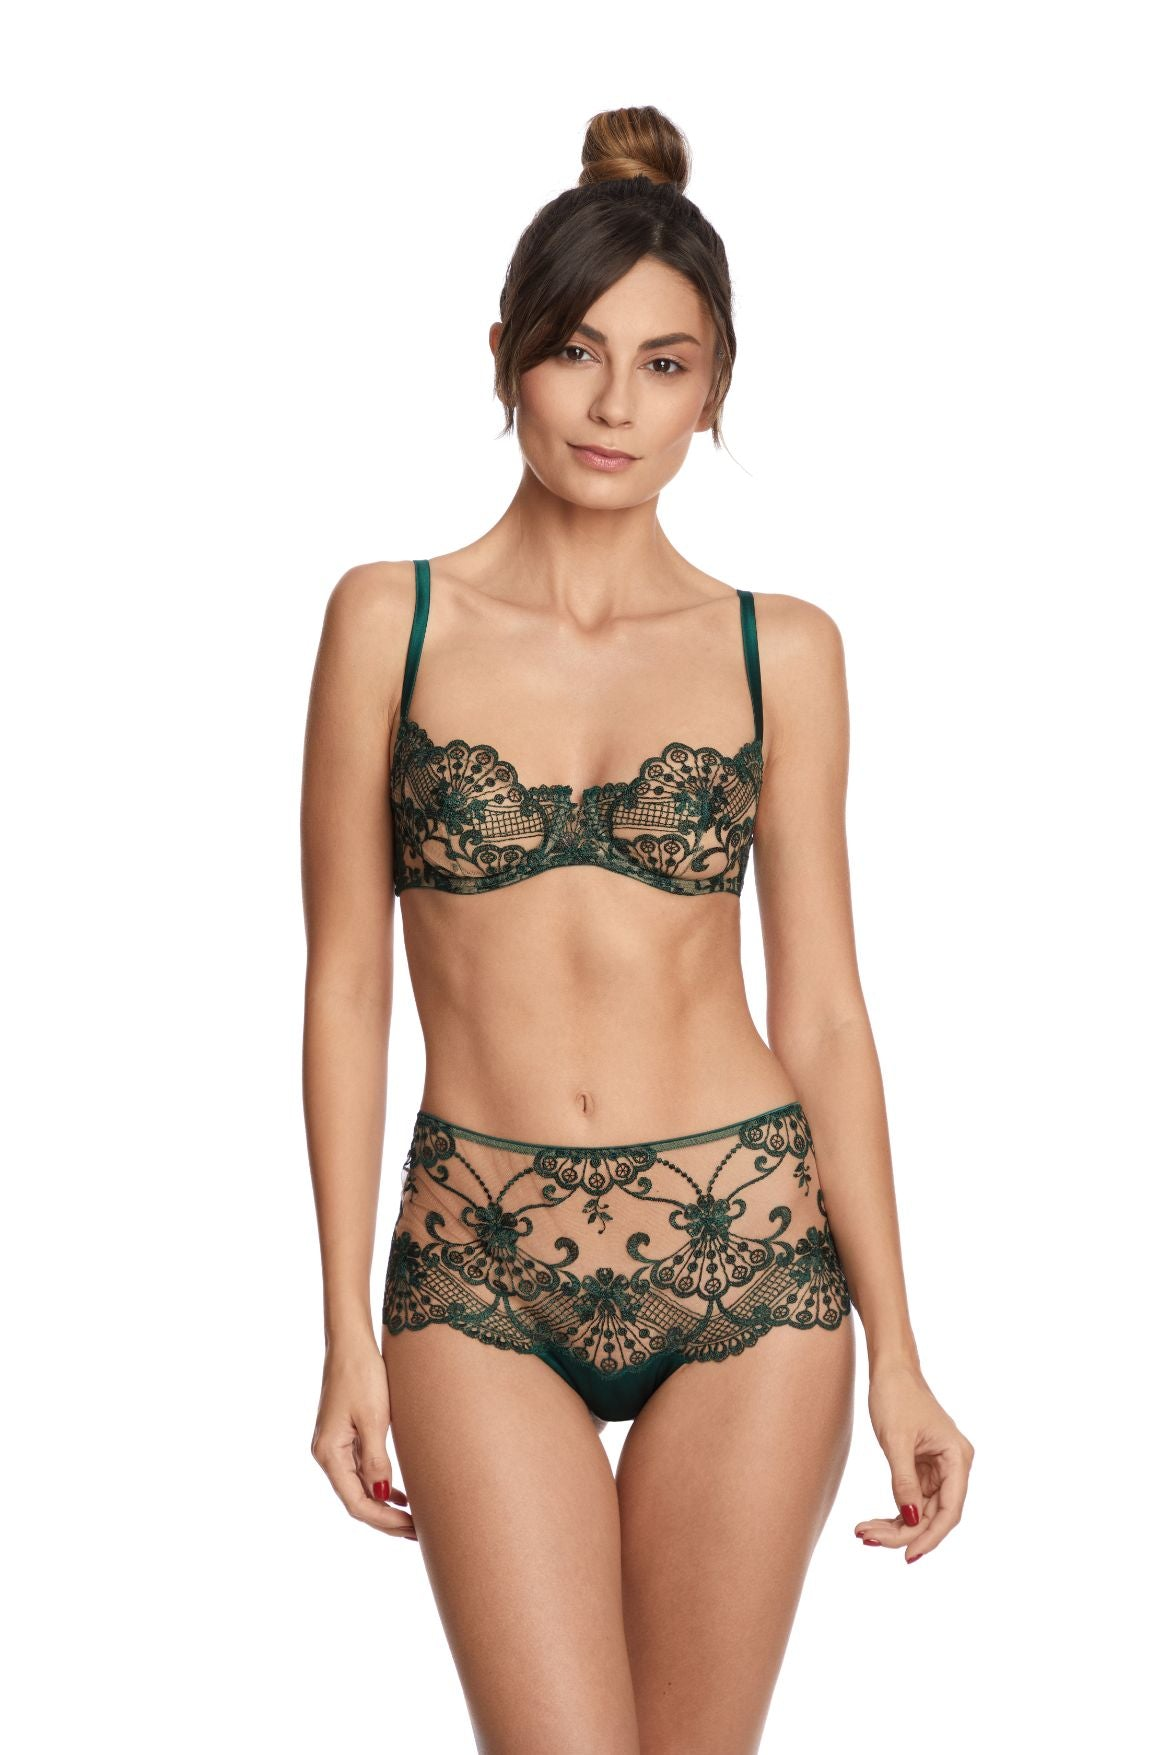 I.D. Sarrieri embroidered underwired bra in green